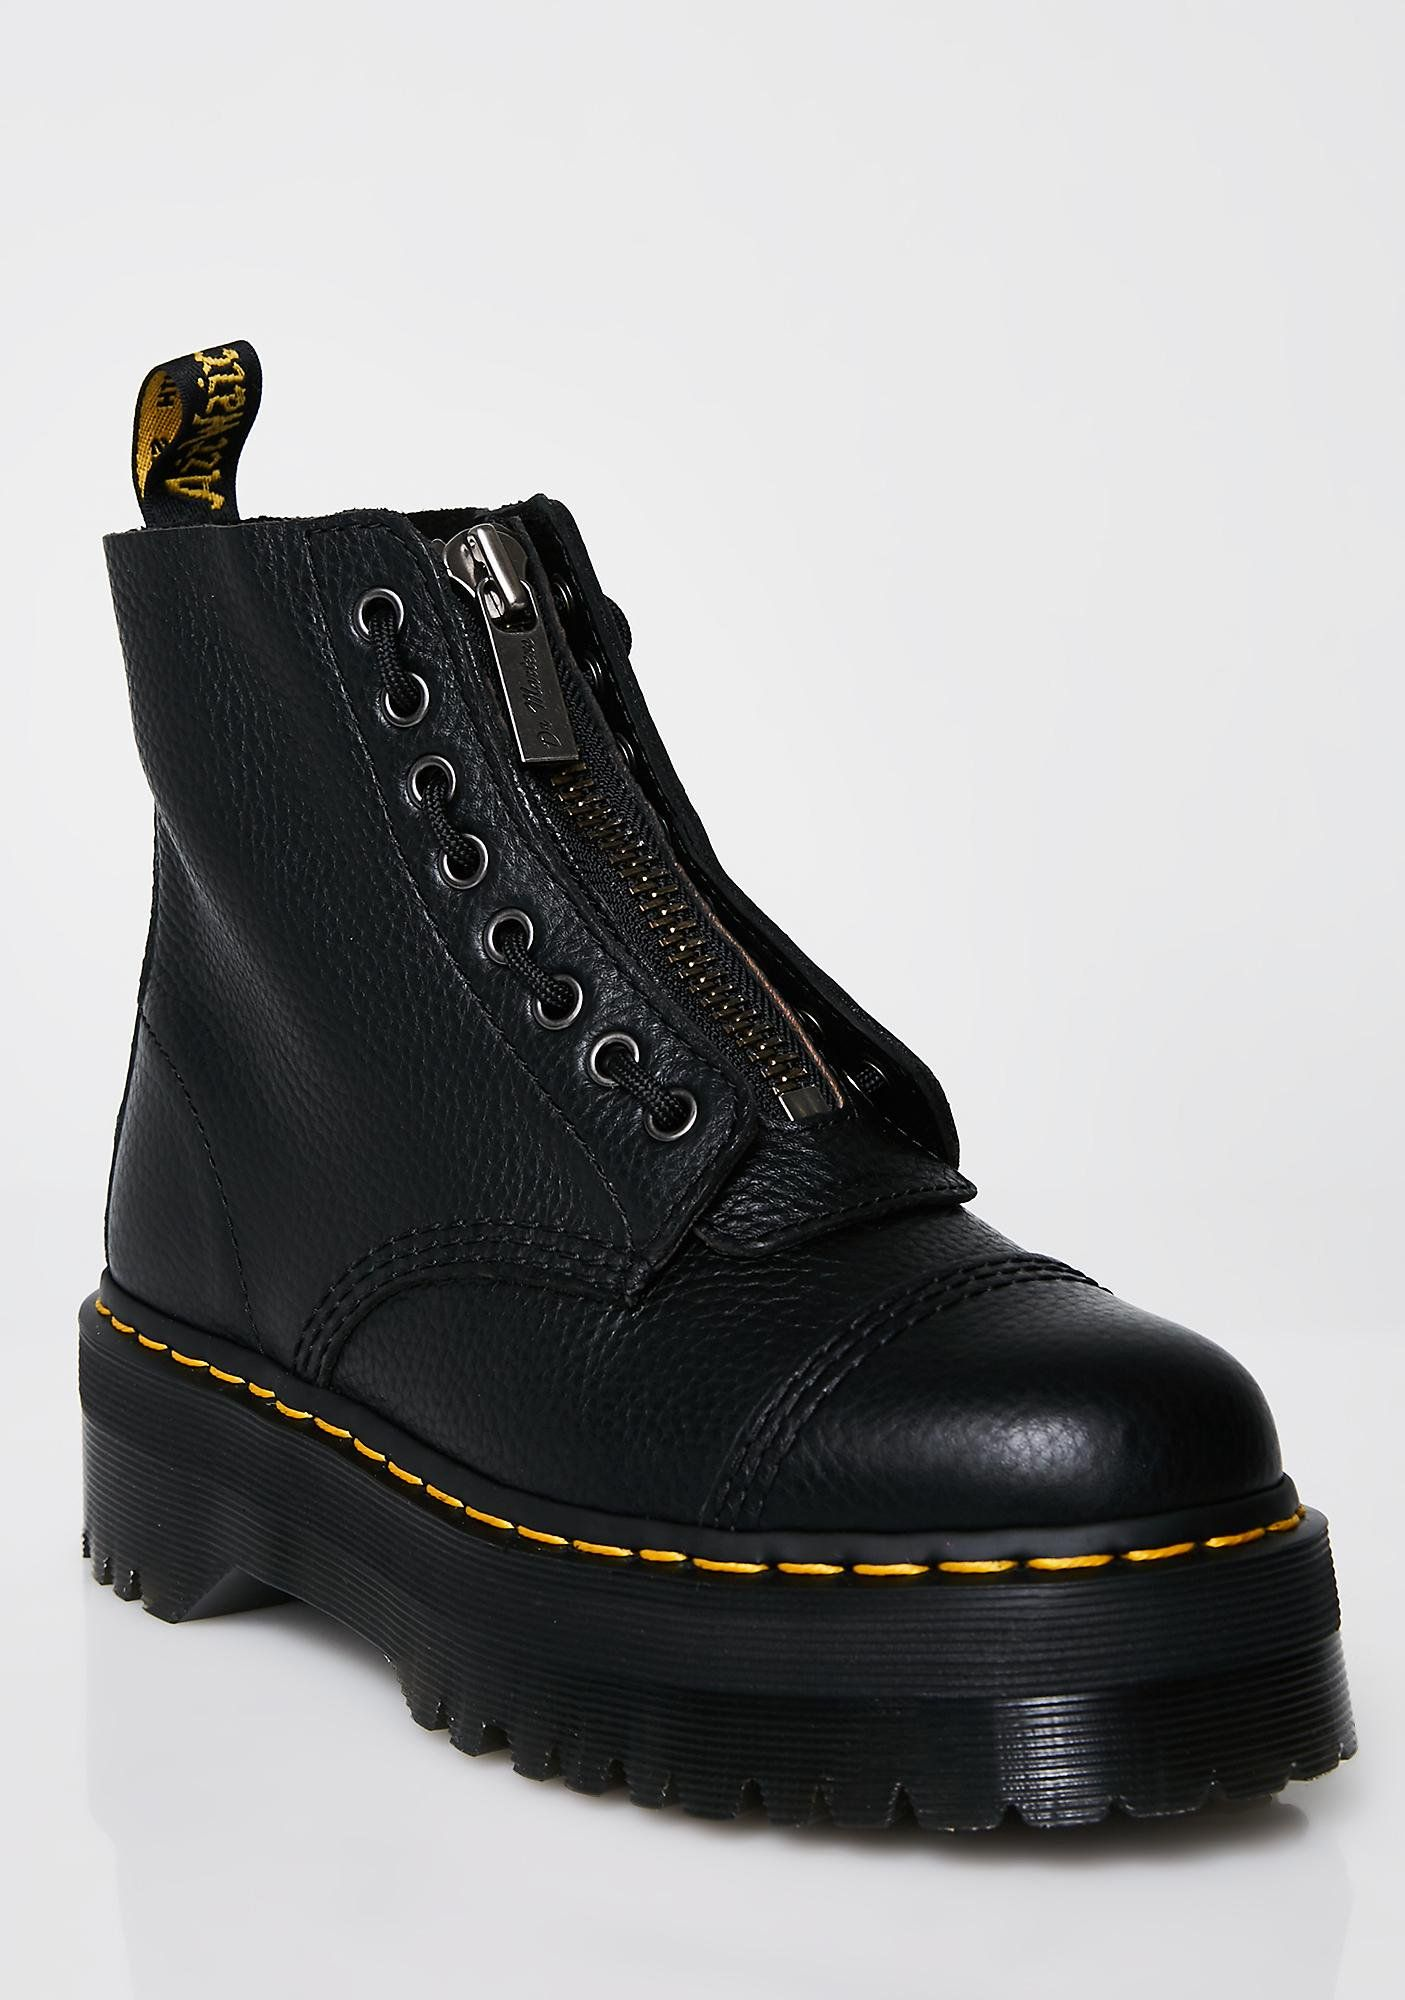 a80c063c26c2 Dr. Martens Sinclair 8-Eye Jungle Boots